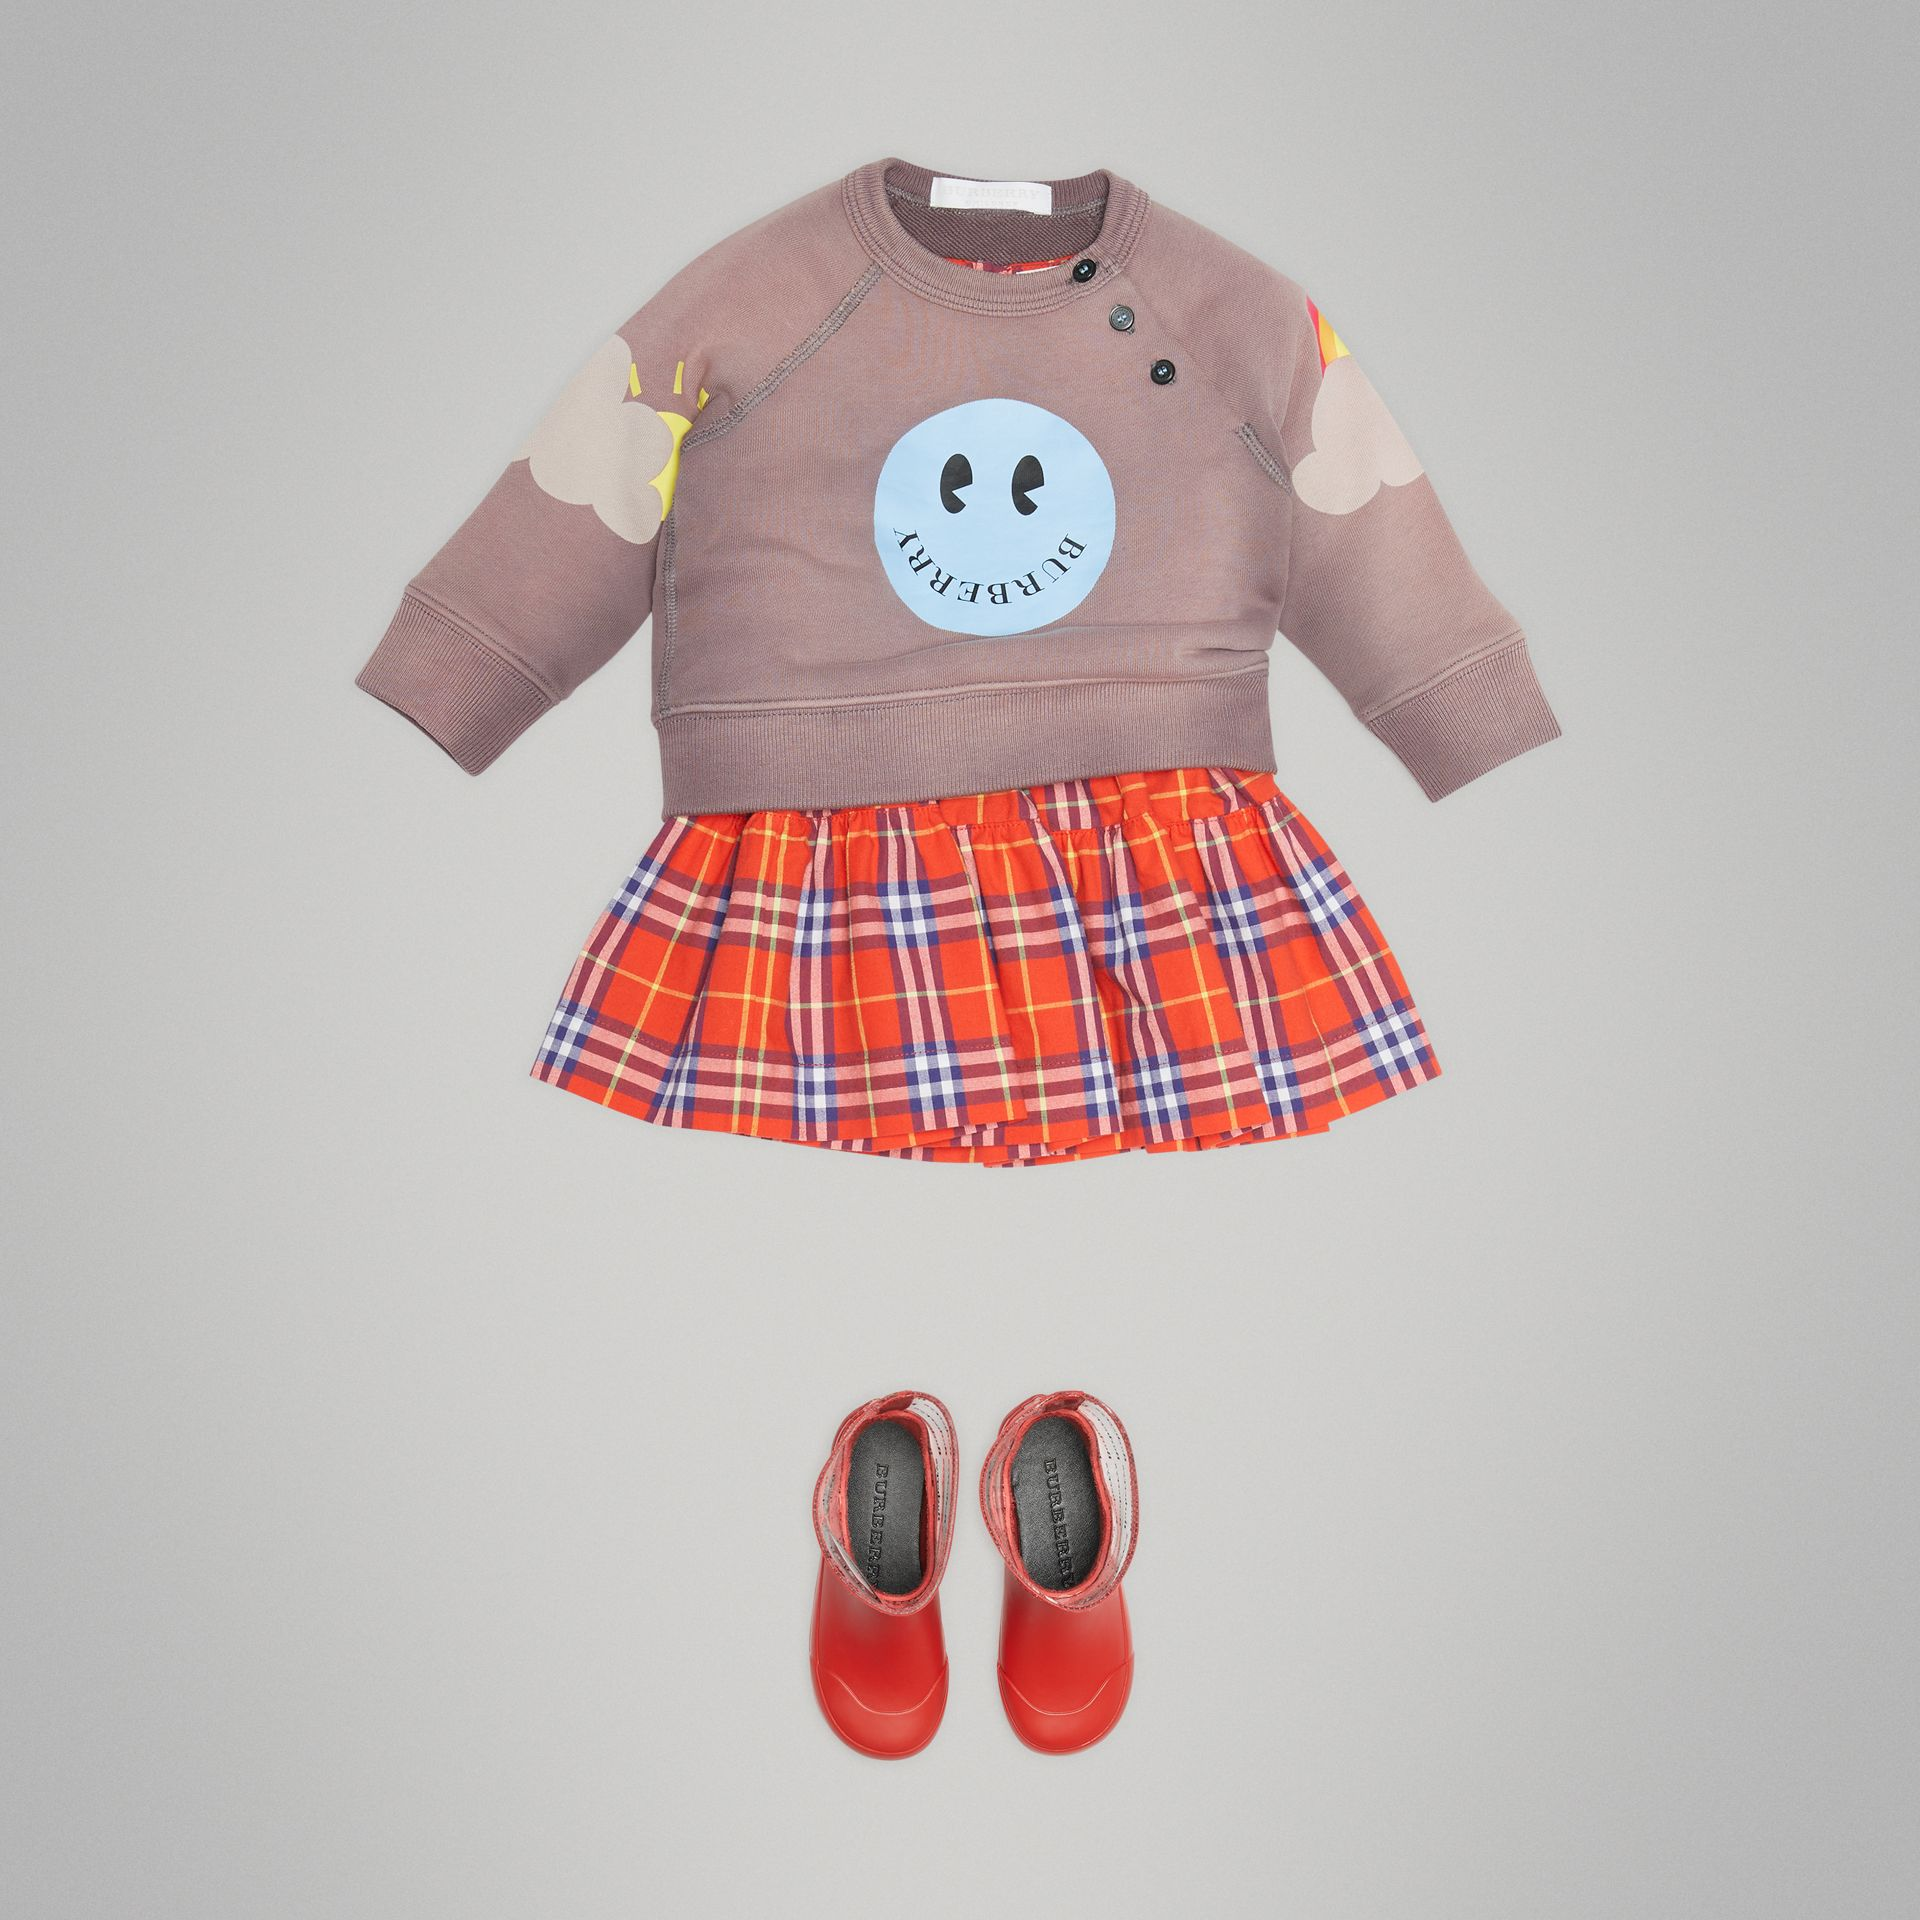 Smiley Face Print Cotton Sweatshirt in Mauve - Children | Burberry - gallery image 2